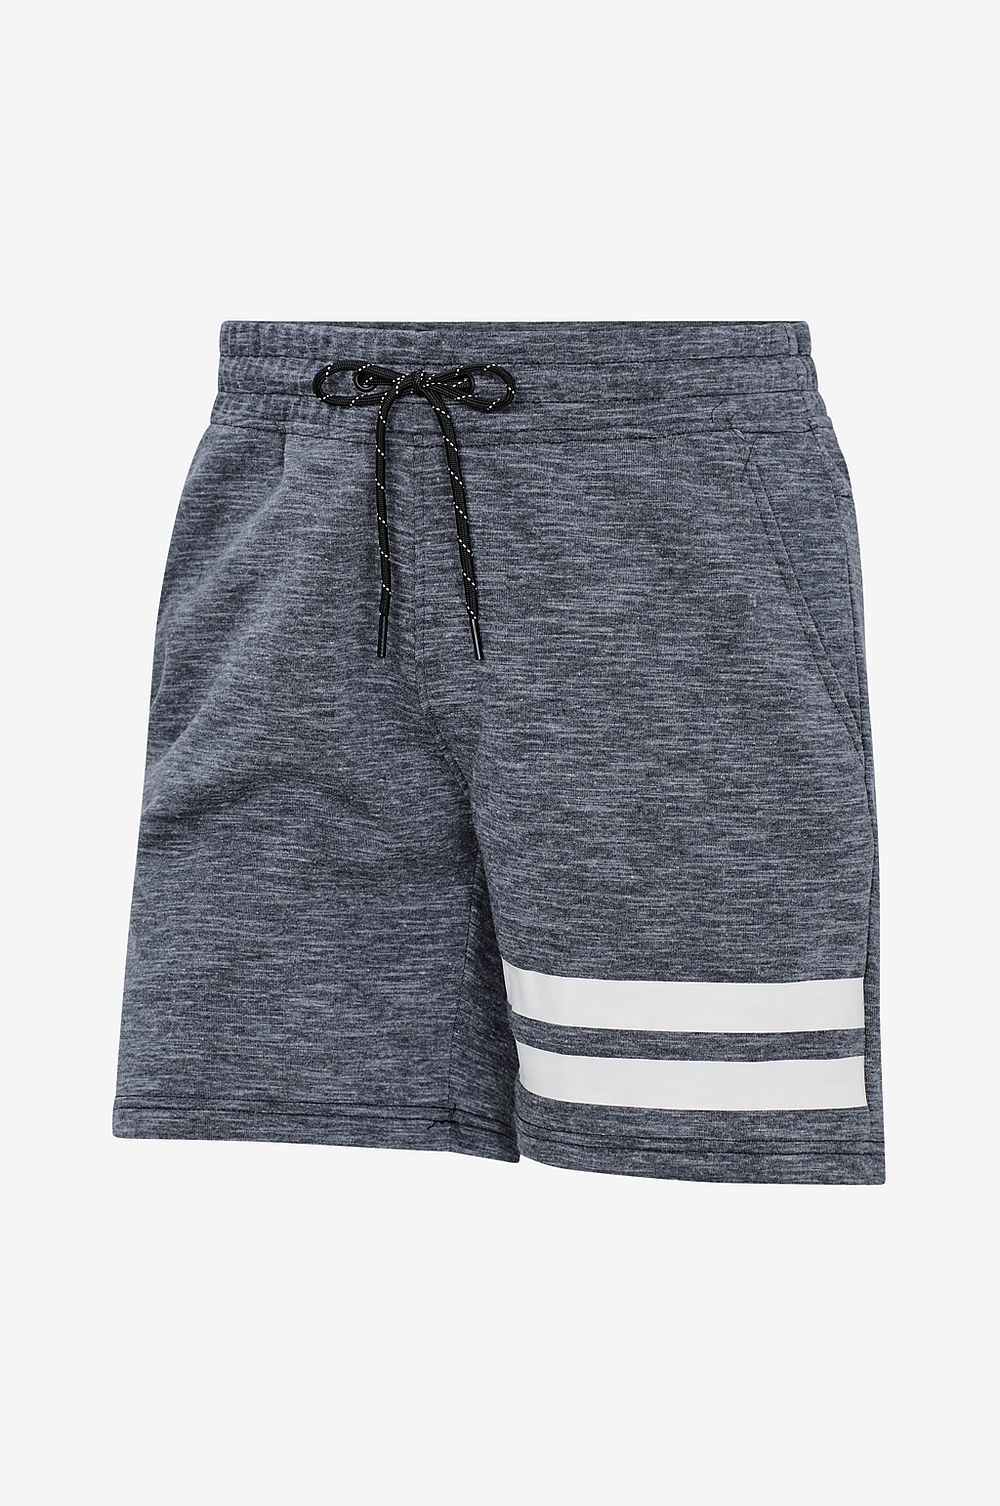 7d6c7b60f Jack Jones Shorts jcoAxelsen Sweat Shorts - Blå - Herr & lccfwa3206 ...